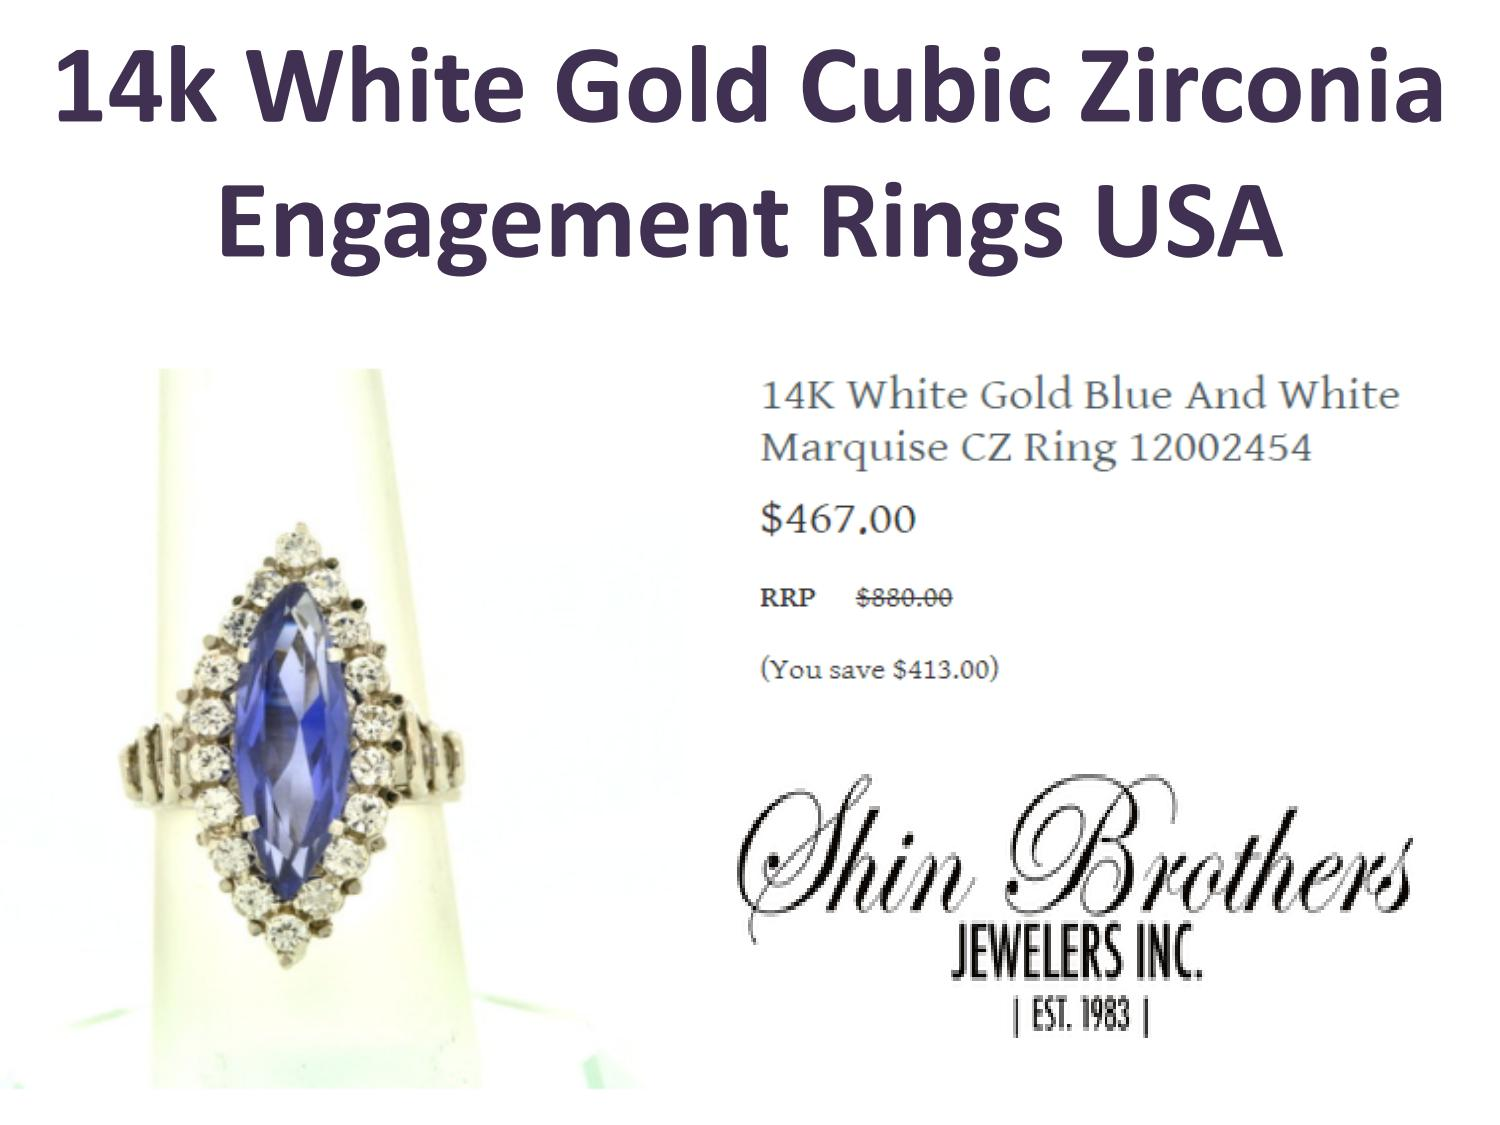 14k White Gold Cubic Zirconia Engagement Rings USA by Shin